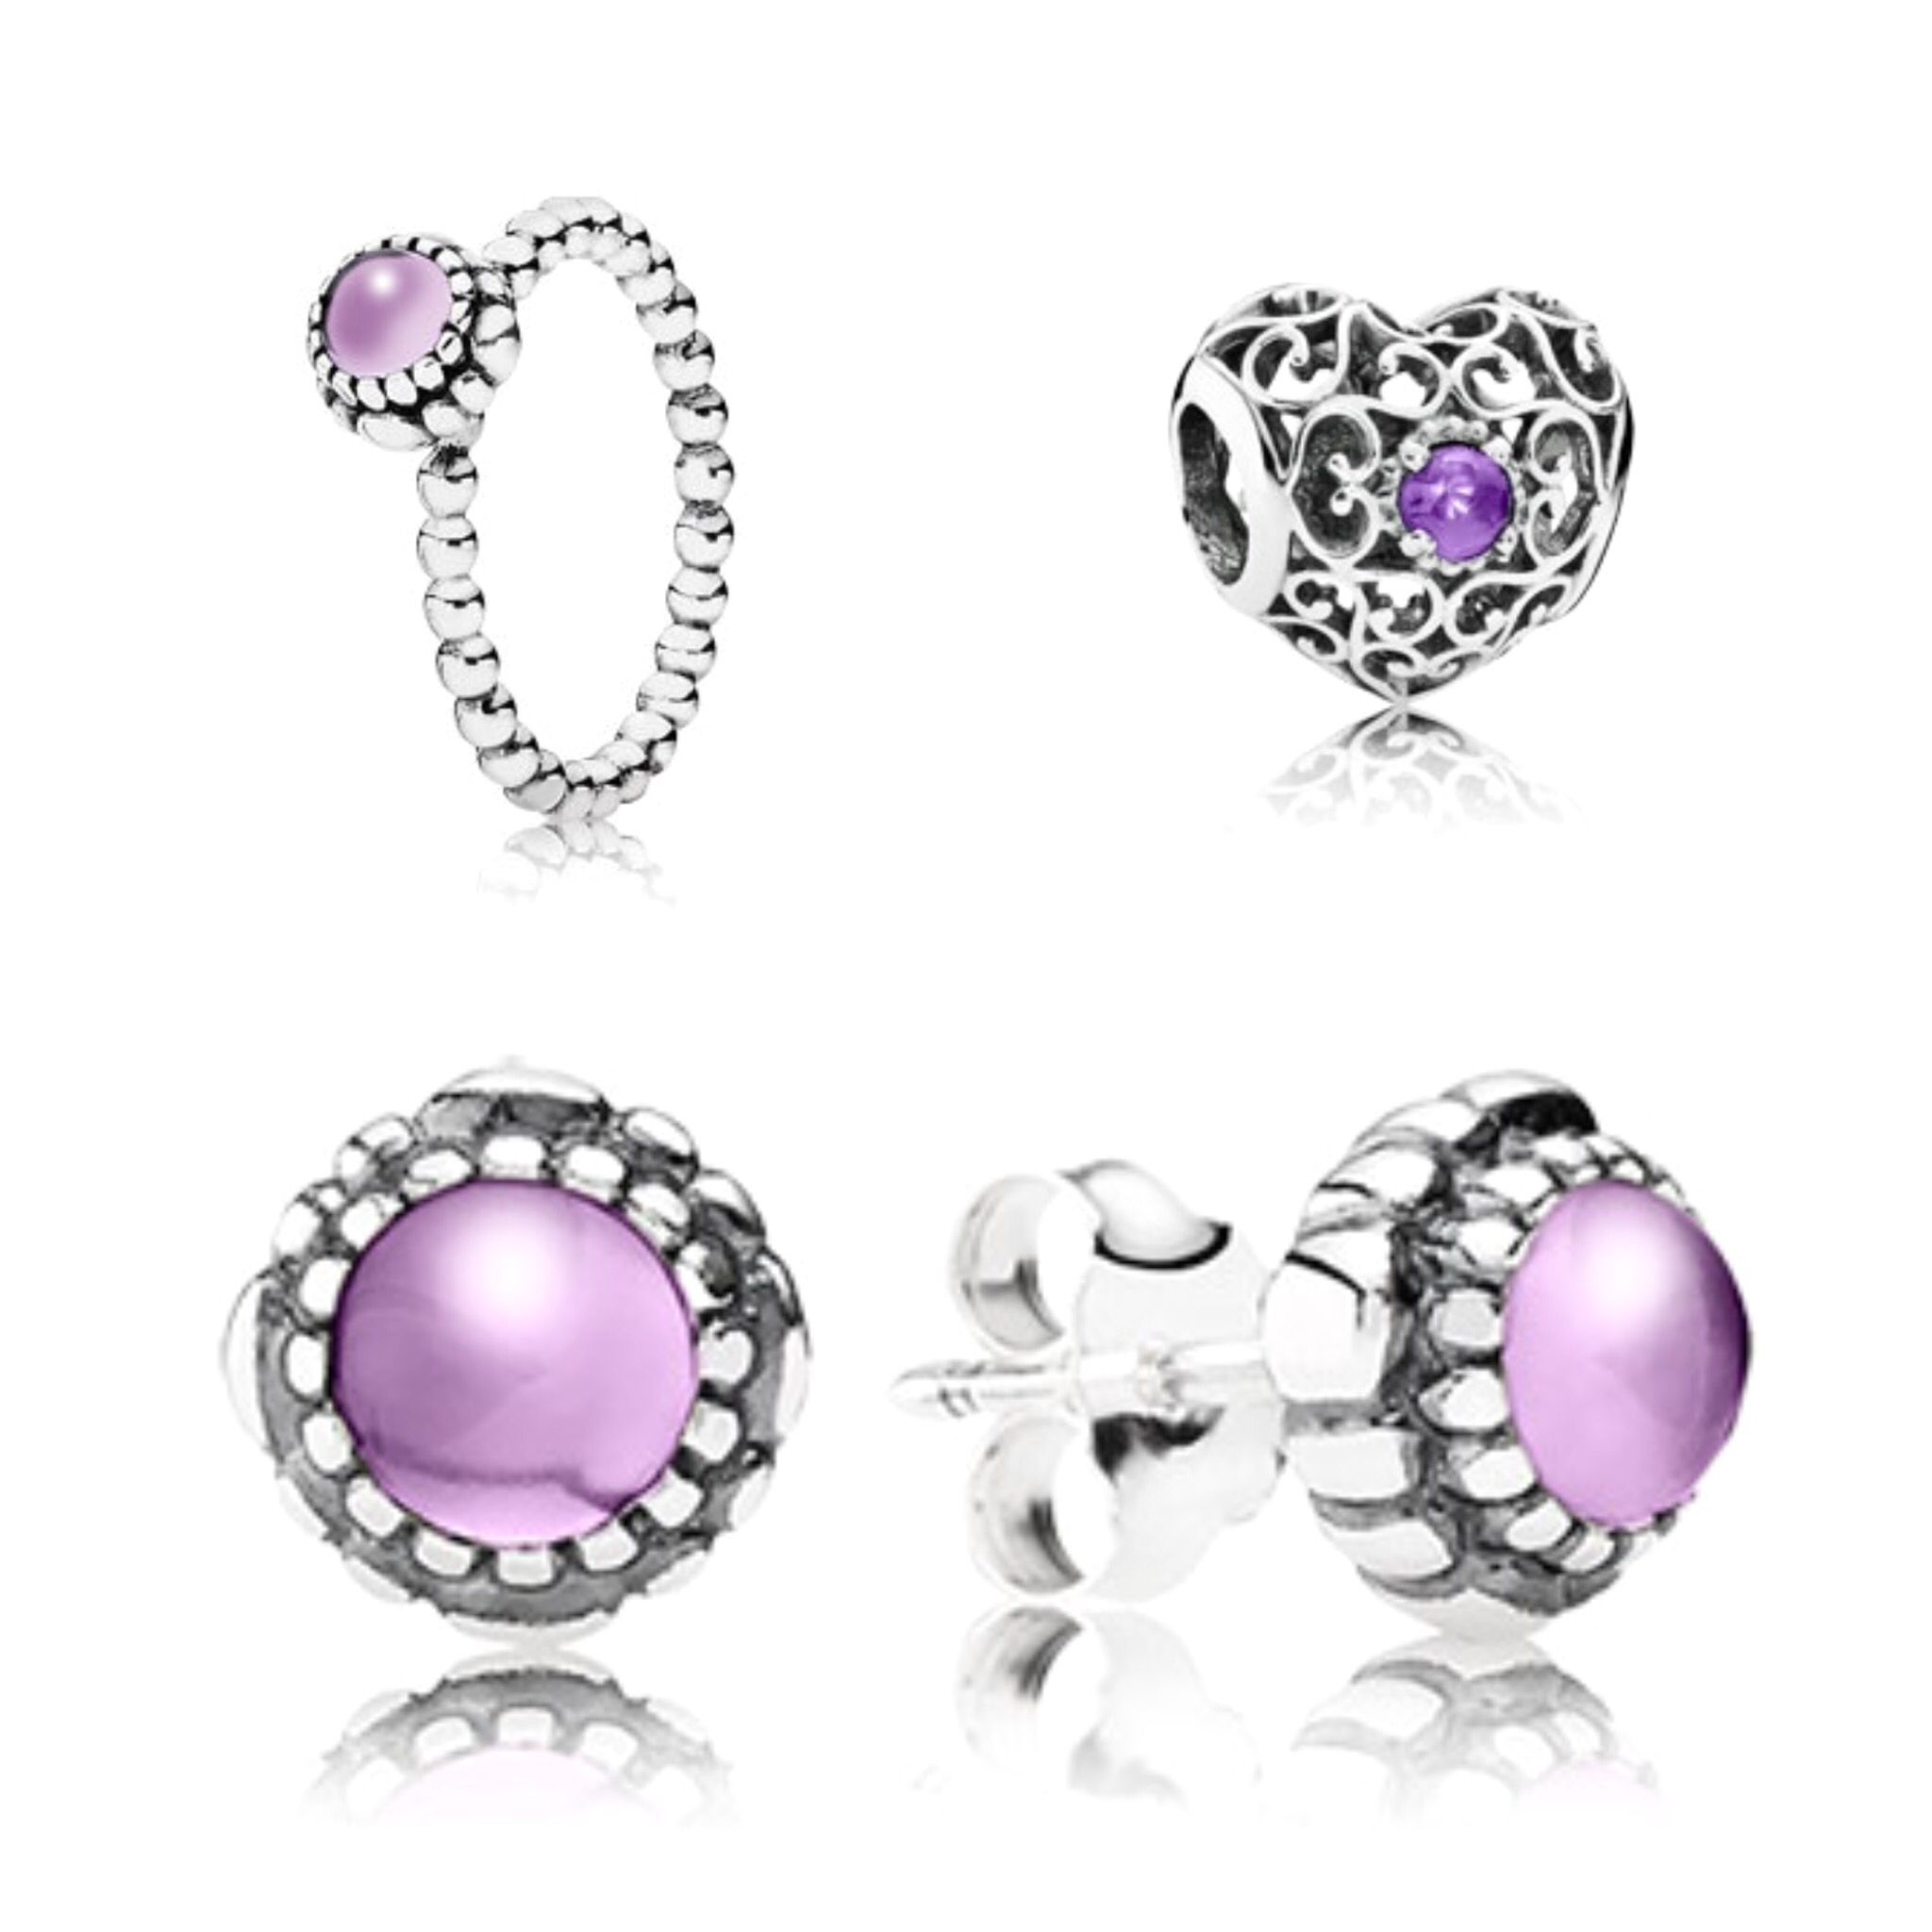 The Pandora Birthstone Range For February Is Amethyst Set In Silver Ever Por Stacker Ring Looks Beautiful On Its Own Or Stacked